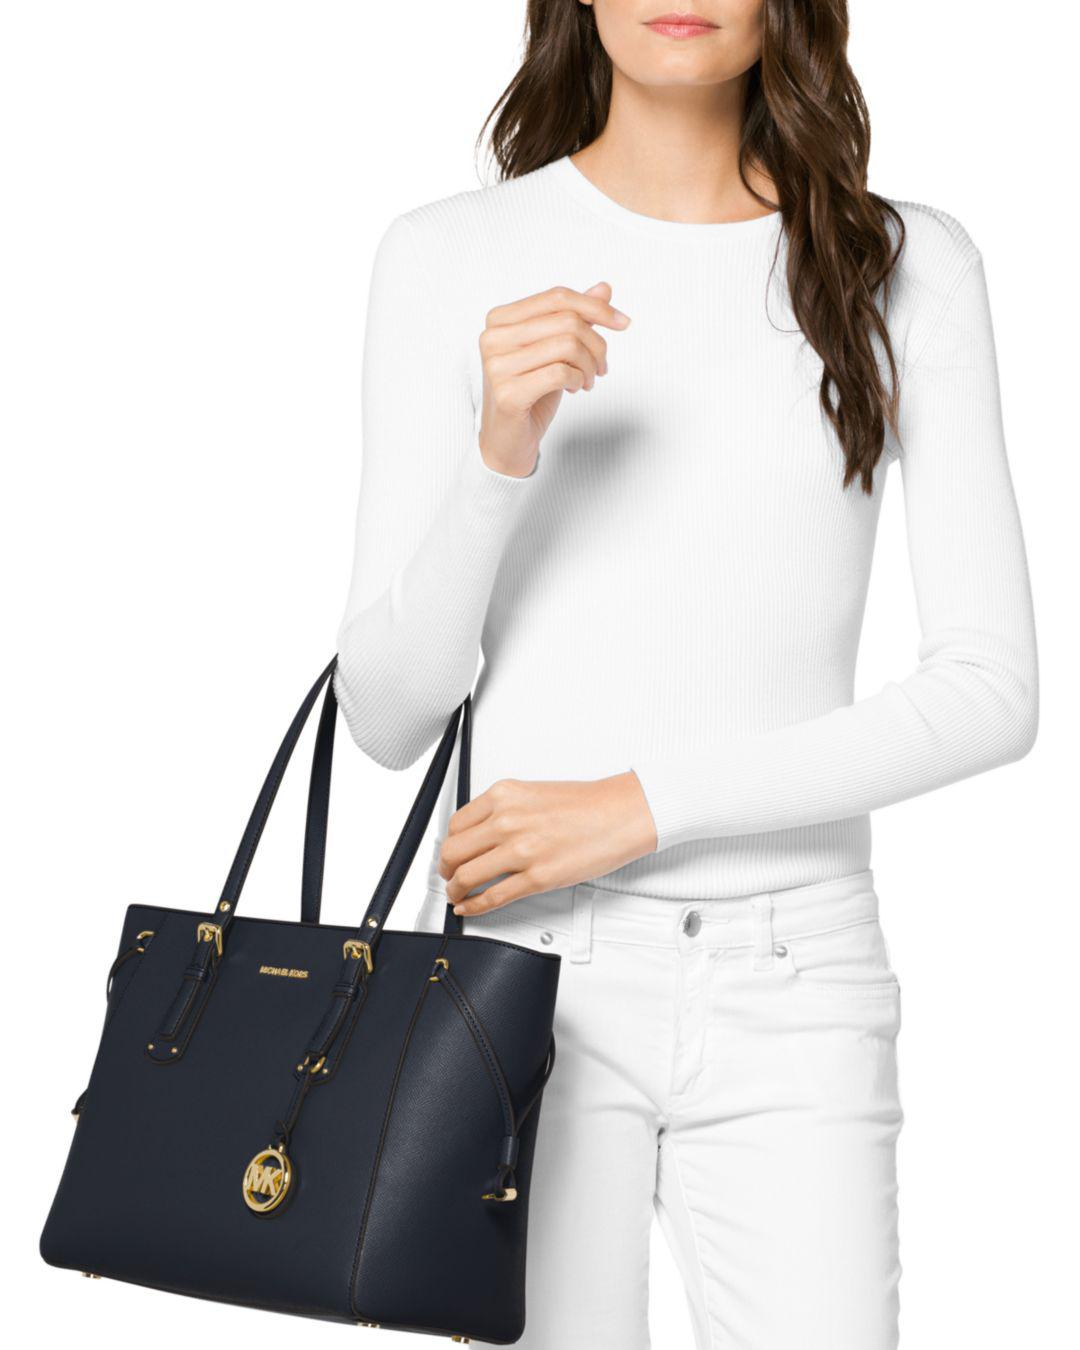 88c7f0242be9db MICHAEL Michael Kors Voyager Multi-function Top Zip Medium Leather Tote in  Blue - Save 8% - Lyst